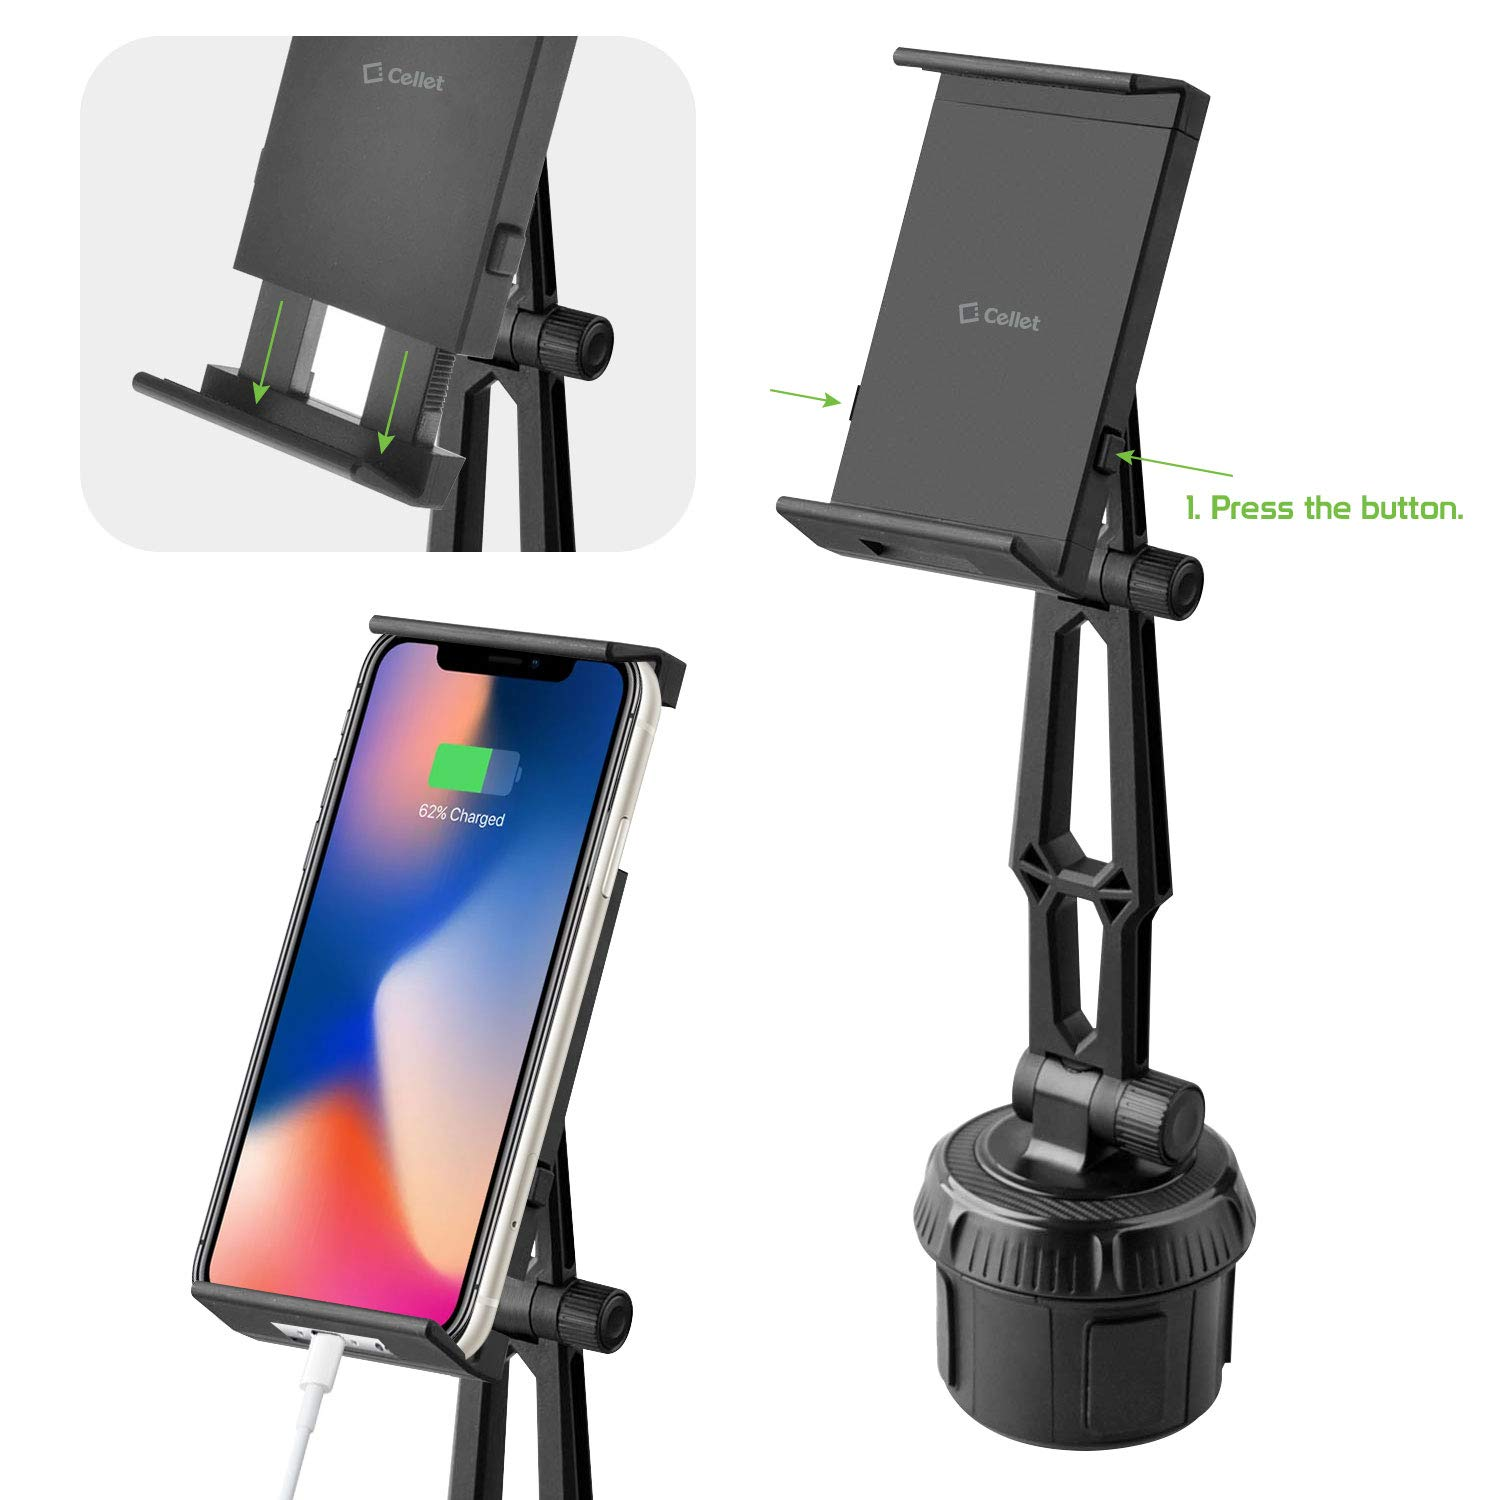 Cellet Adjustable Cup Holder Cell Phone Mount Universal Car Cradle Compatible with iPhone 11 Pro Max Xr Xs Max X 8 Plus Galaxy S10 S9 S8 A50 Note 10 9 8 Pixel 4 3 XL LG G8X ThinQ HTC Motorola